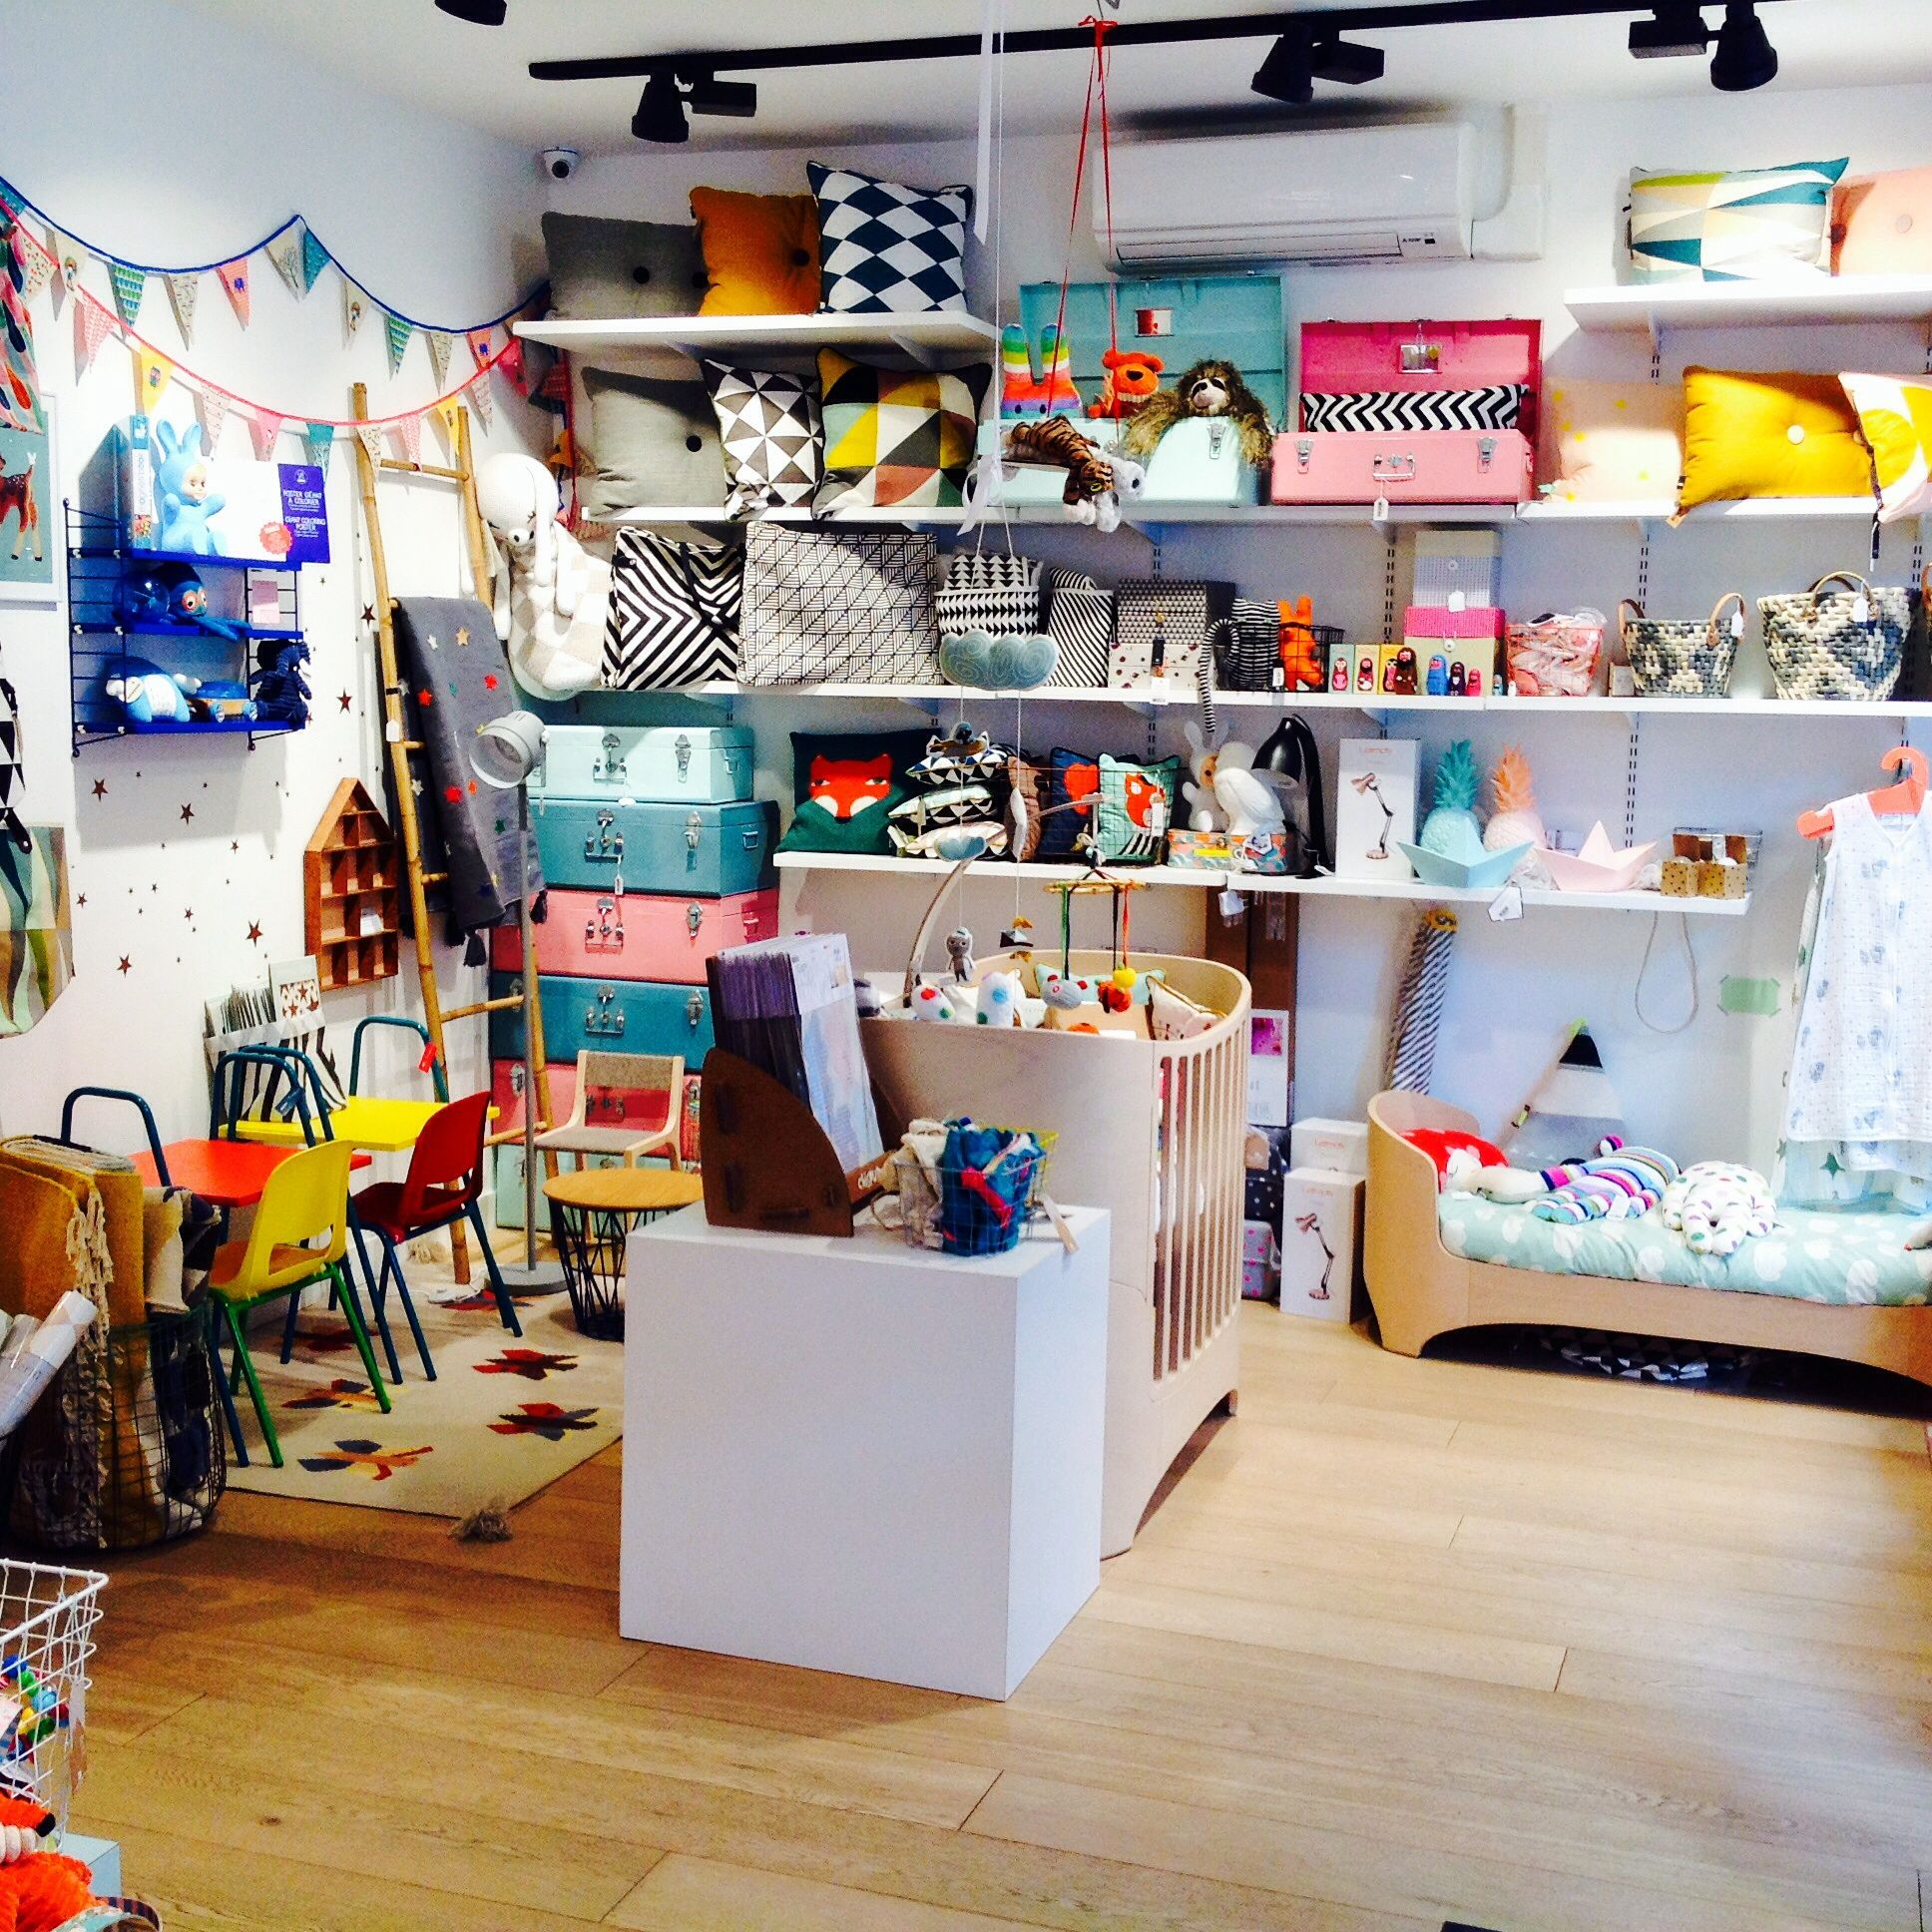 Boutique Mombini kids concept shop cafe and playspace in France